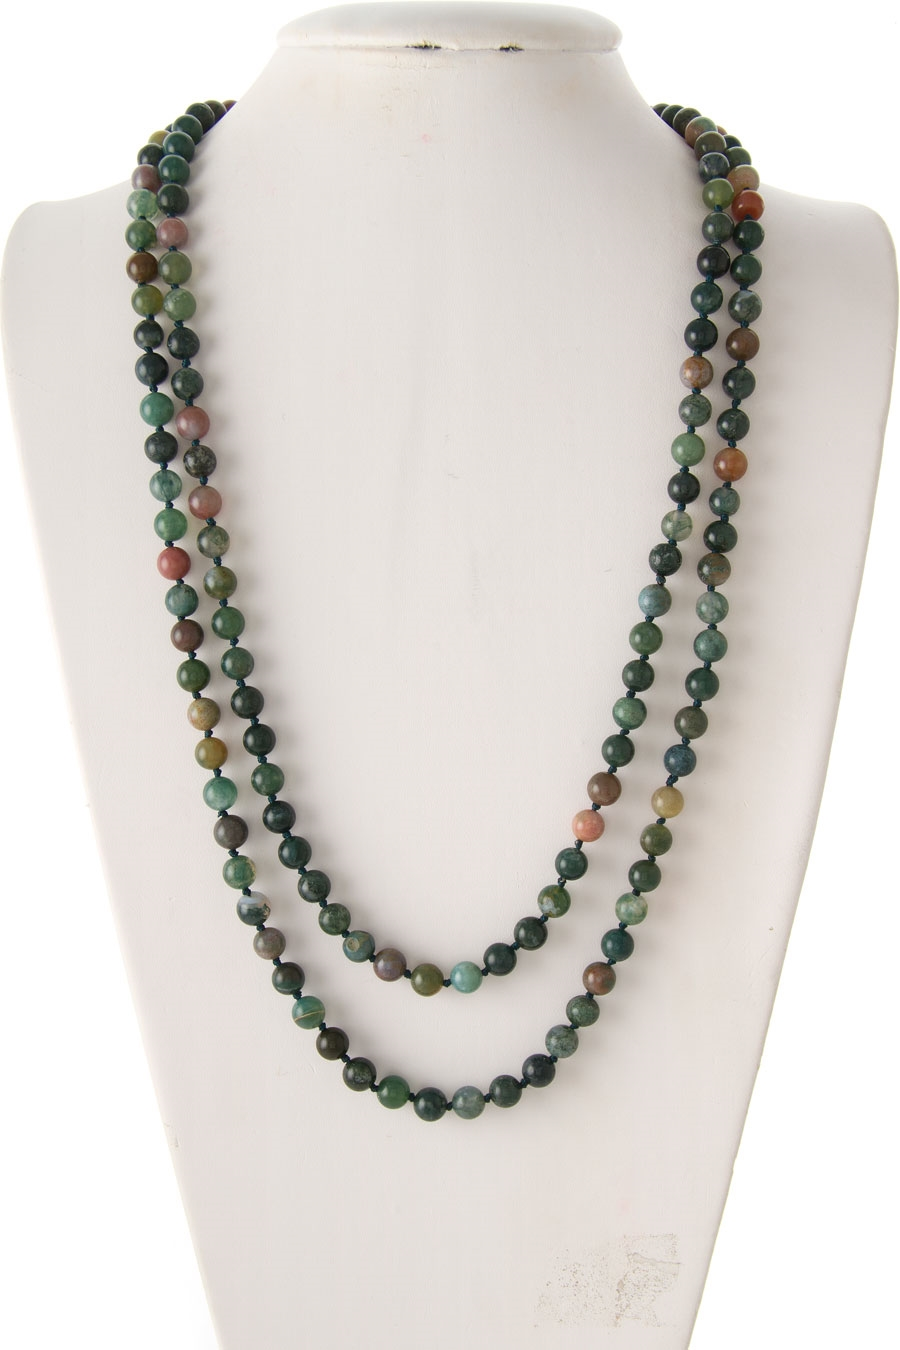 KNOTTED AGATE STONE NECKLACE - orangeshine.com